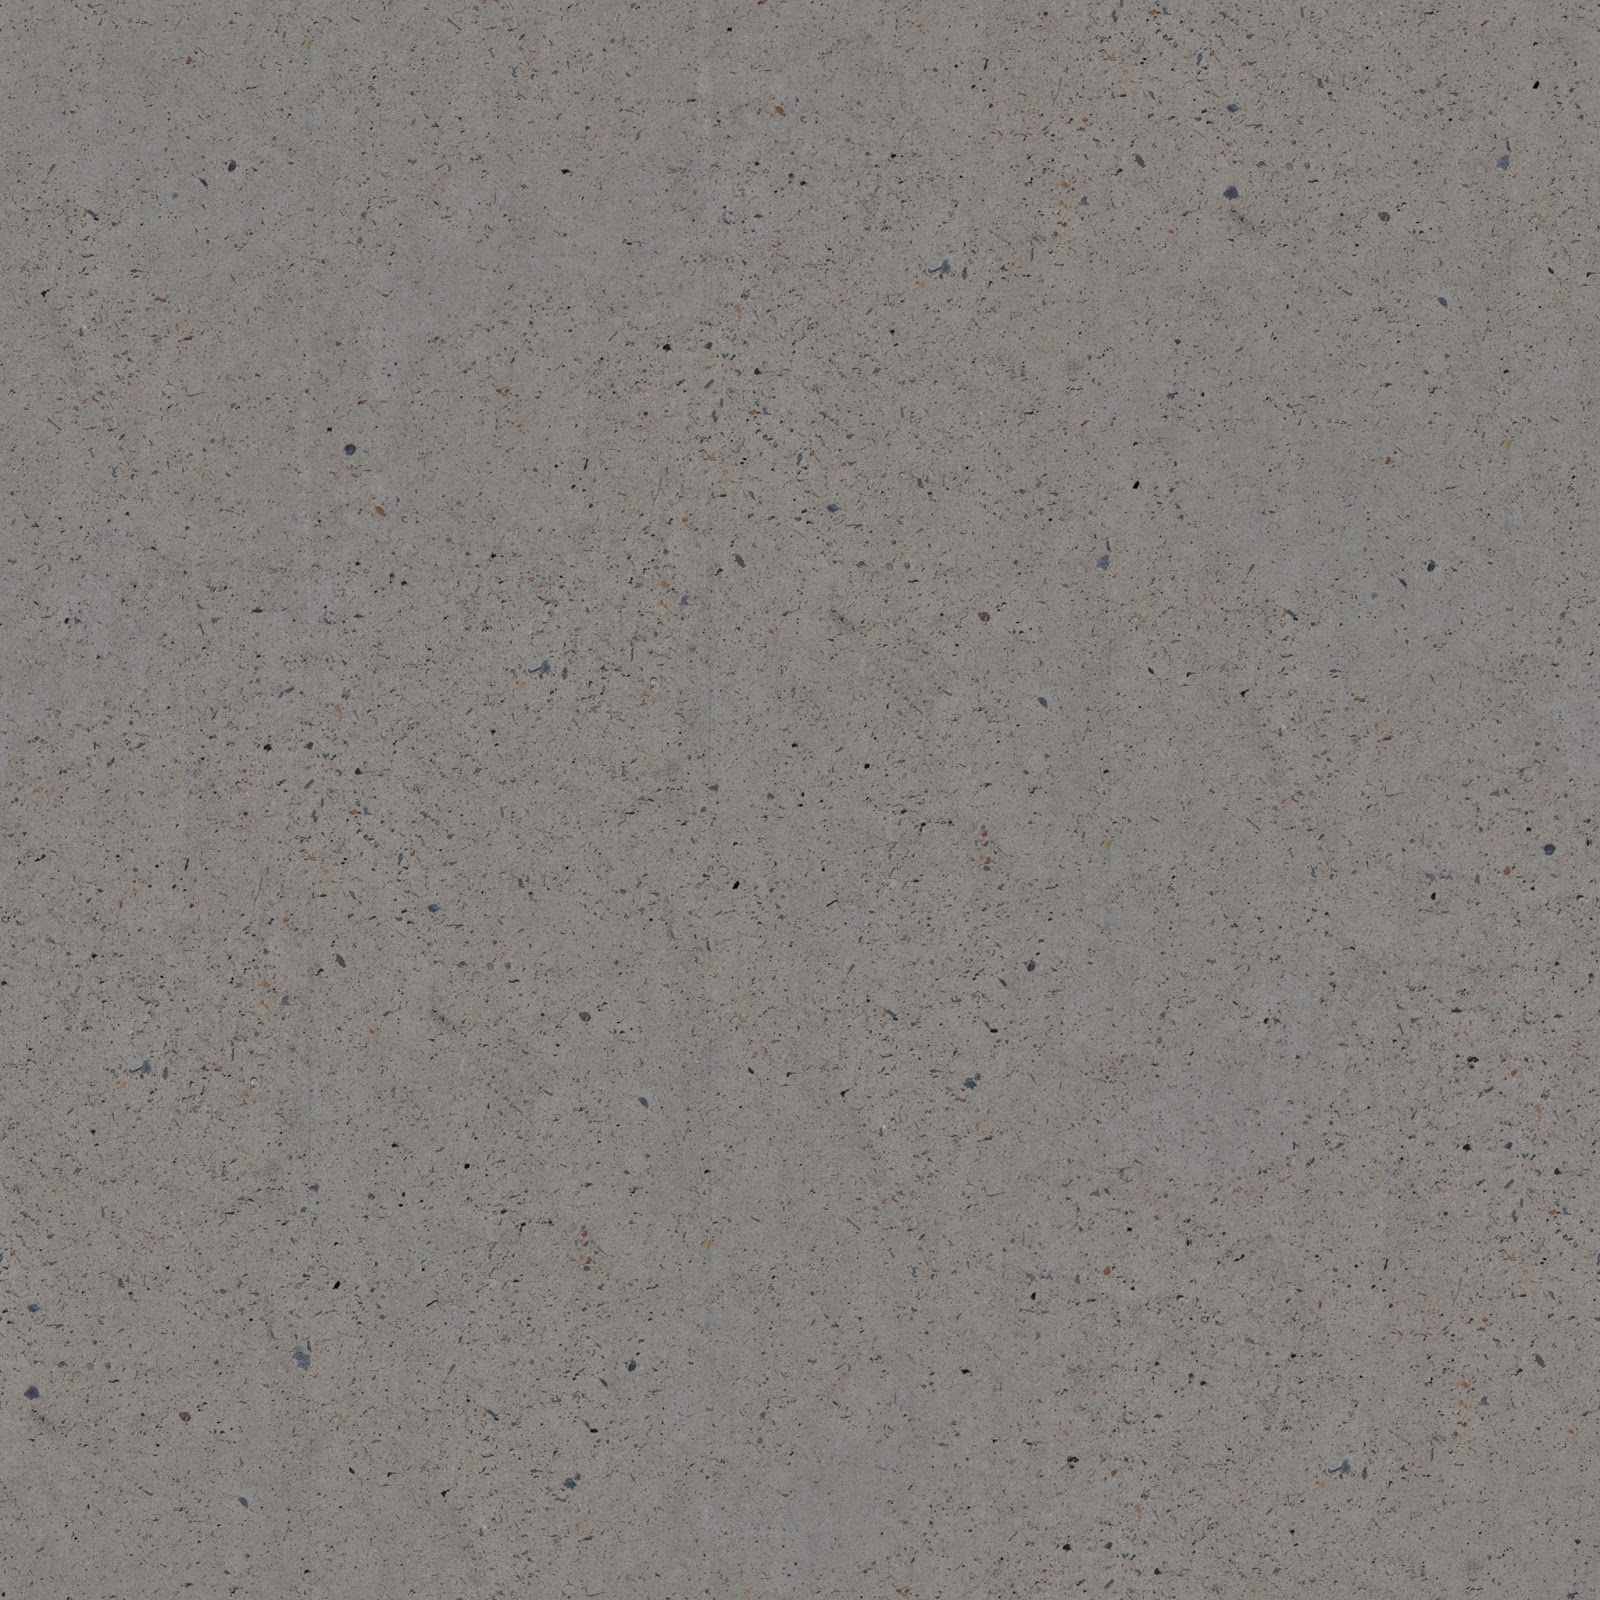 HIGH RESOLUTION SEAMLESS TEXTURES: Smooth Concrete Texture